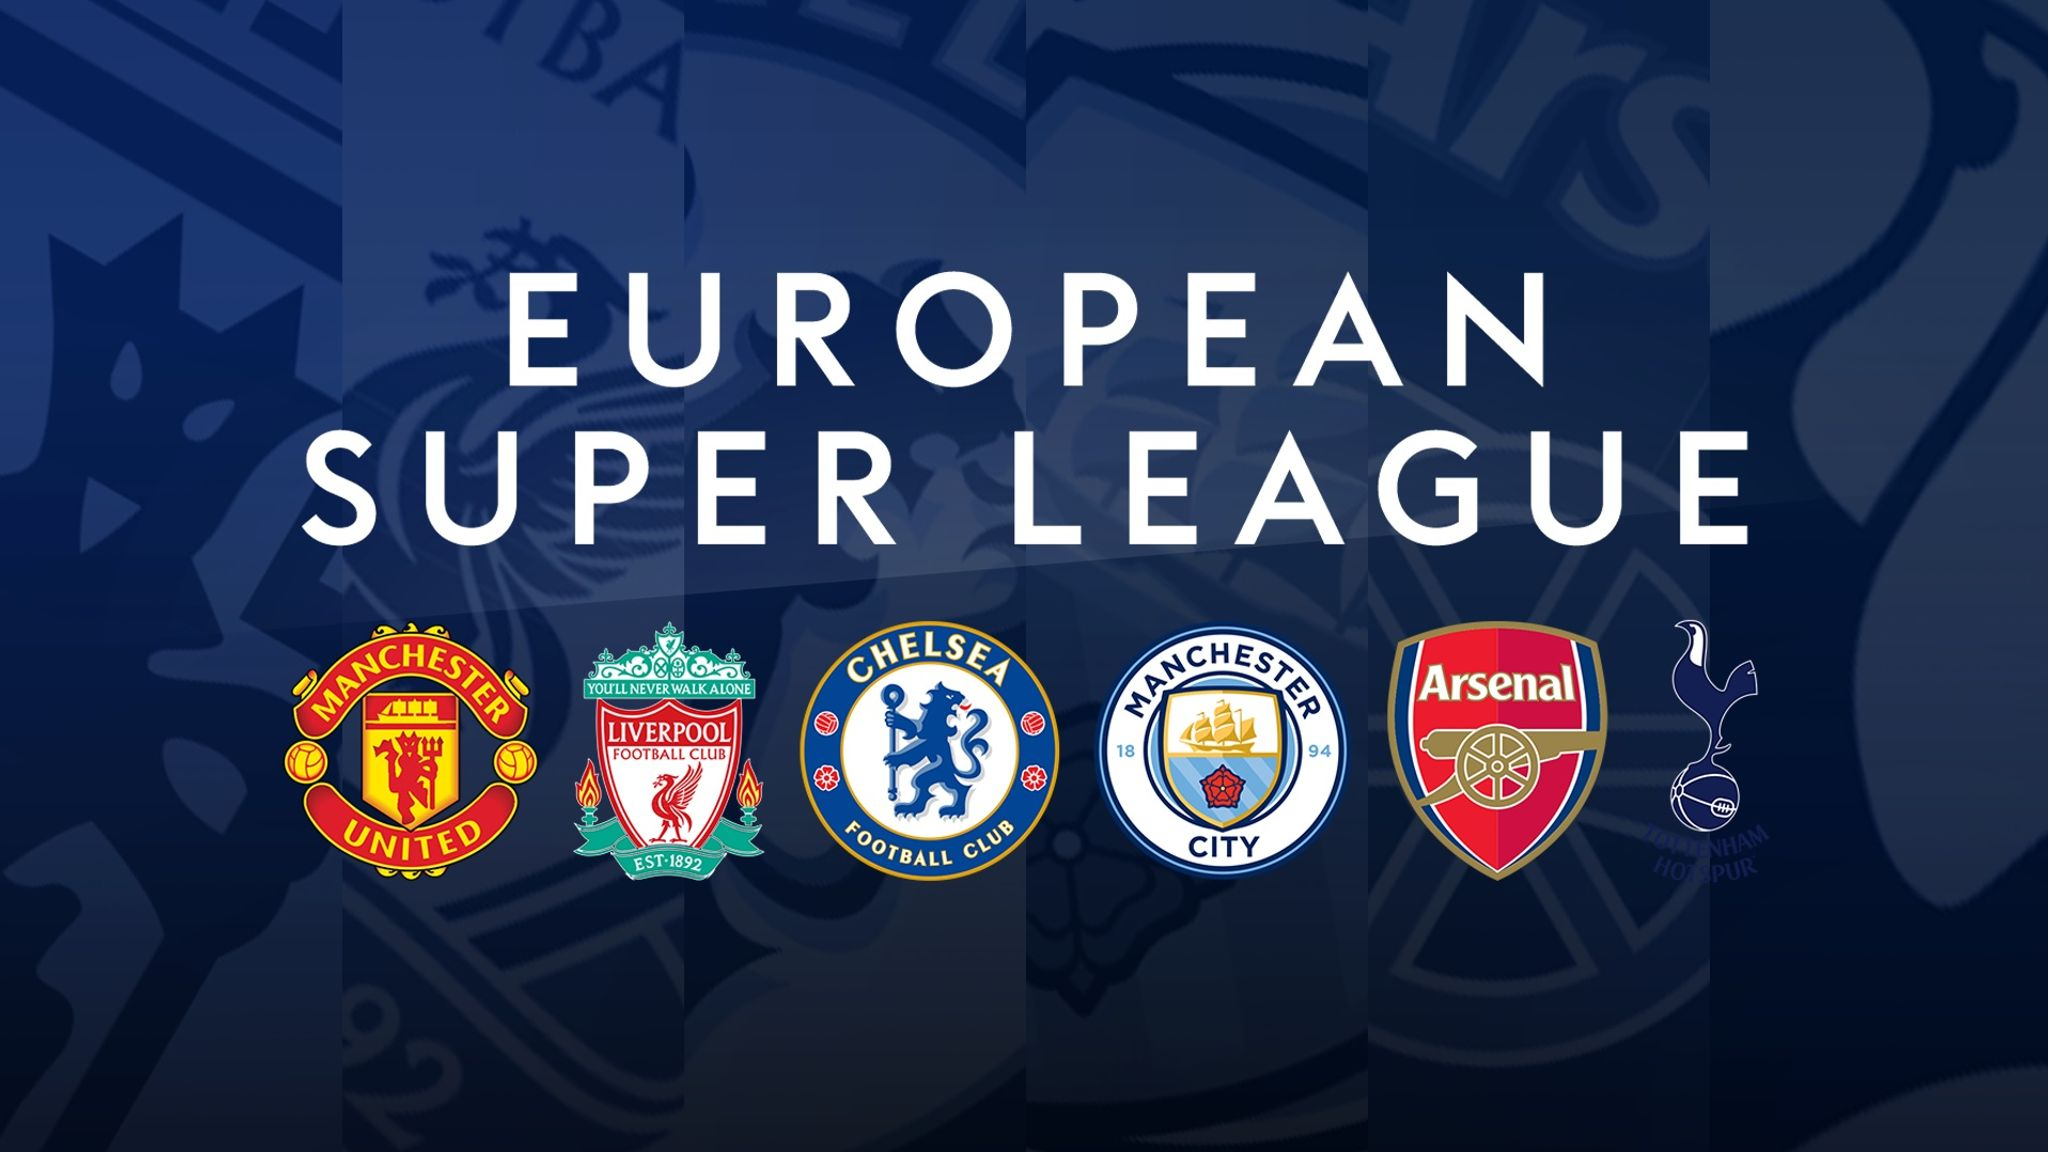 European Super League controversy : All you need to know